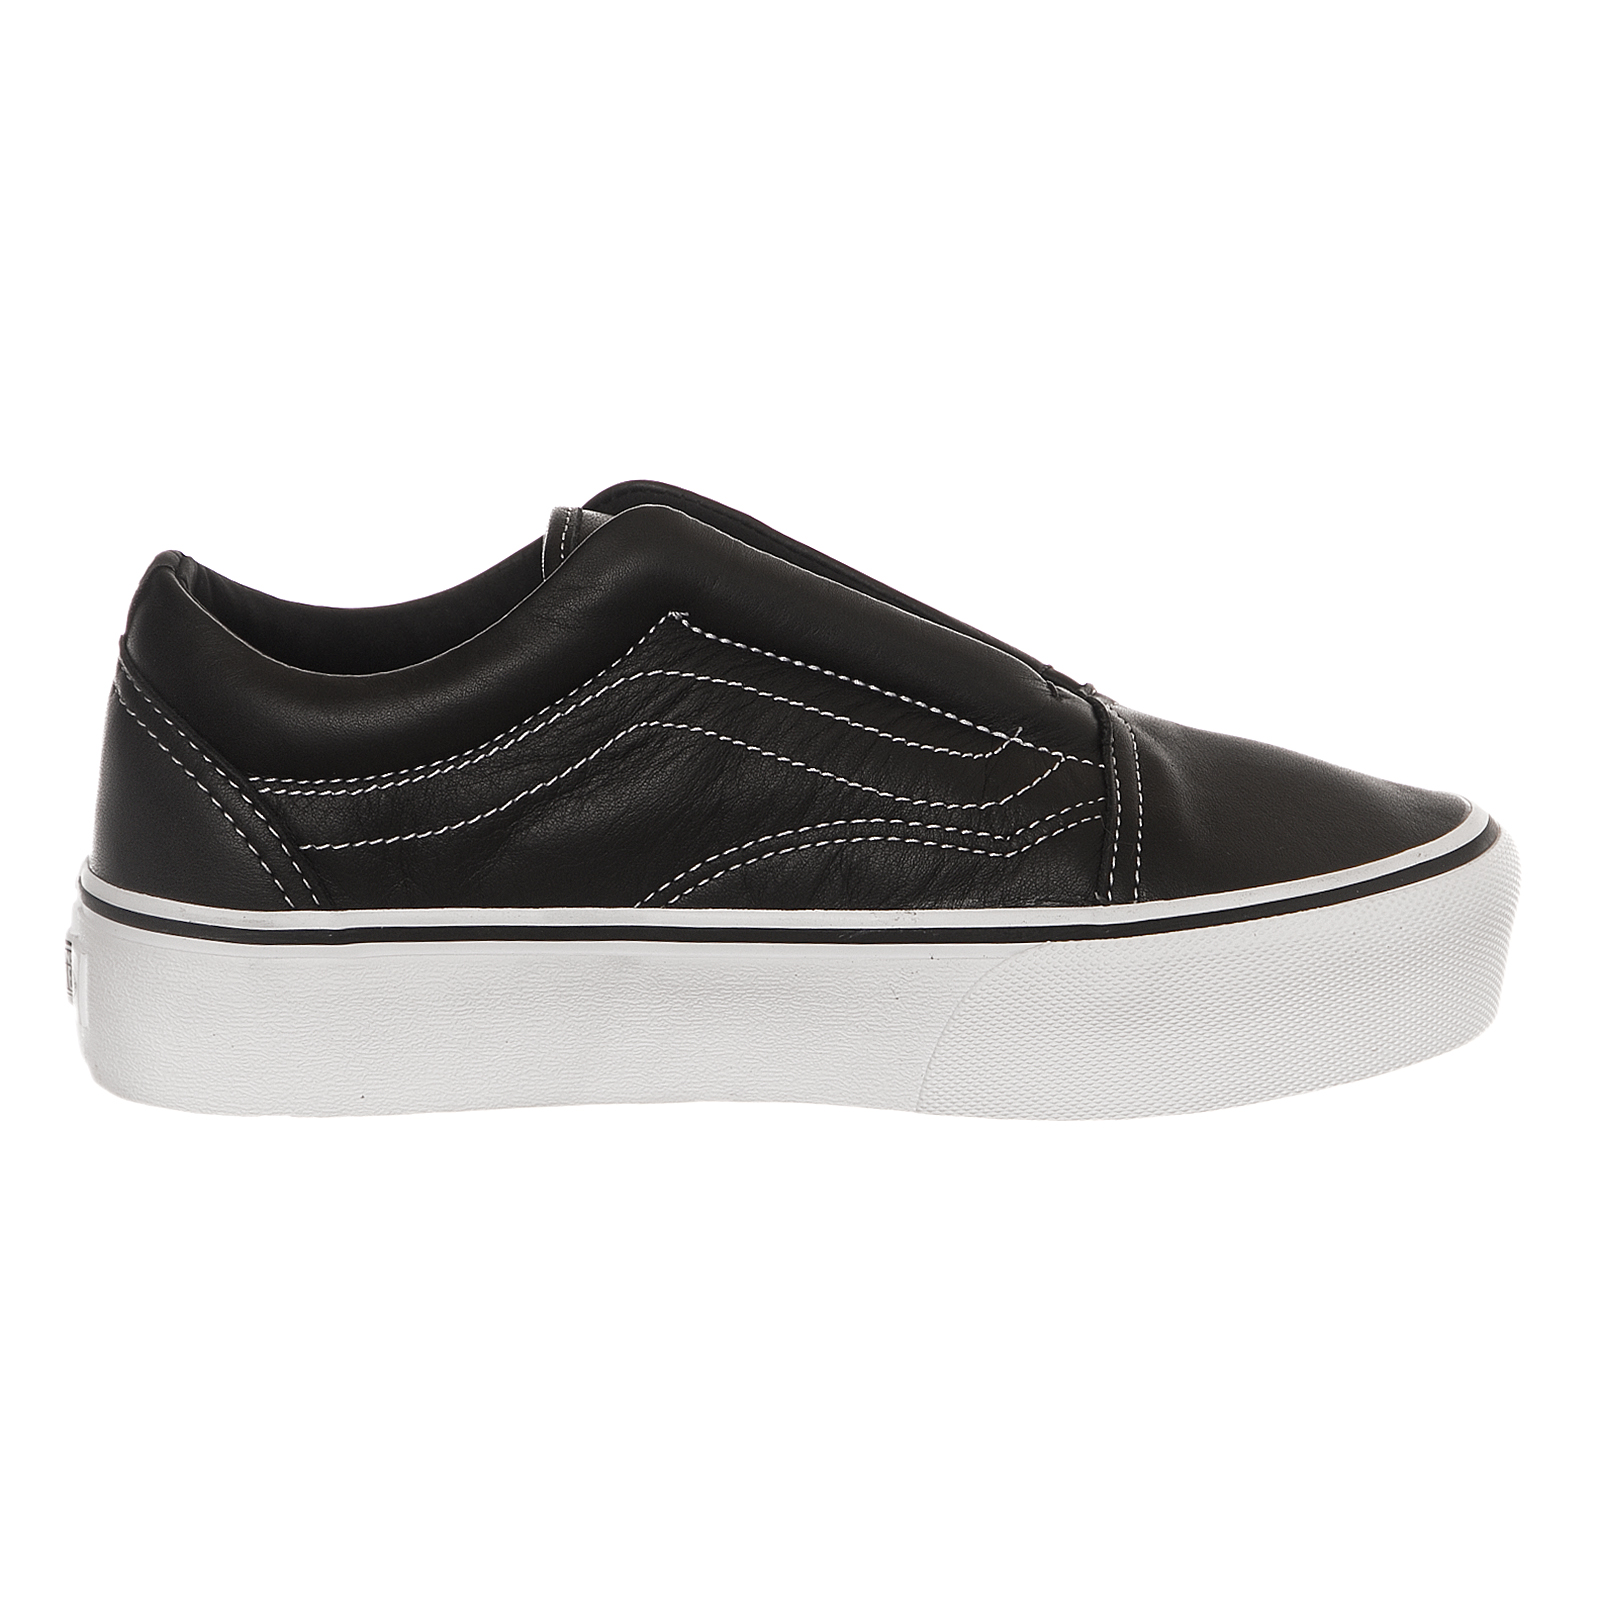 8e4a789114ce VANS X Karl Lagerfeld Old Skool Black Leather Laceless Platform Size 9.5  RP. About this product. Picture 1 of 6  Picture 2 of 6 ...